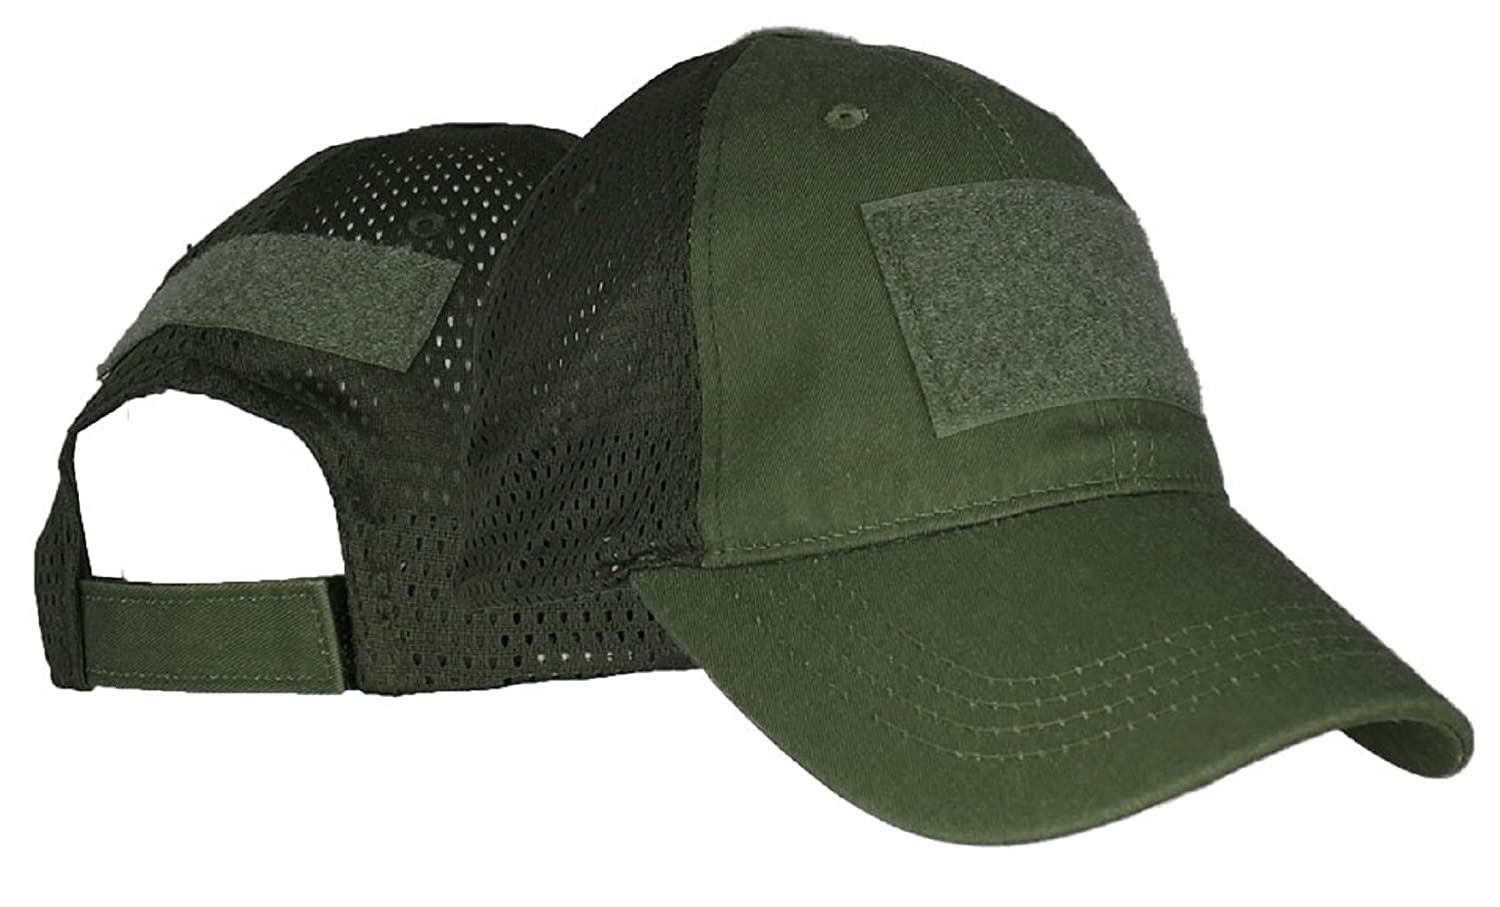 c271416fb93 Amazon.com  Eagle Crest Blank Mesh Baseball Hat With 3 Hook and Loop  Locations